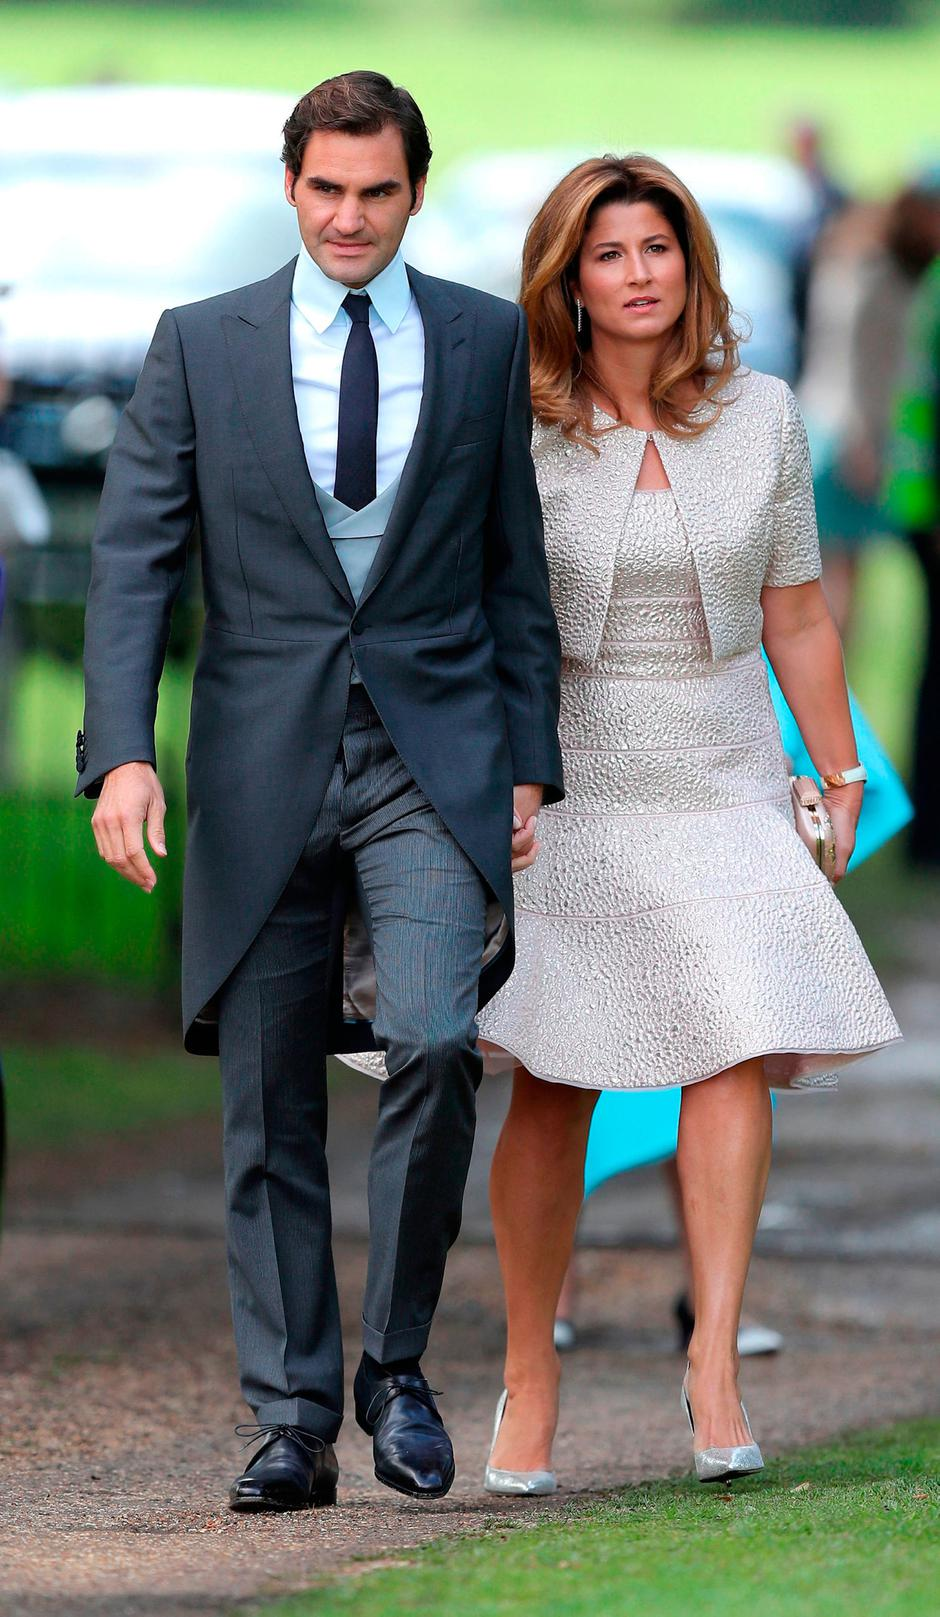 Roger Federer among guests to arrive at church ahead of Pippa